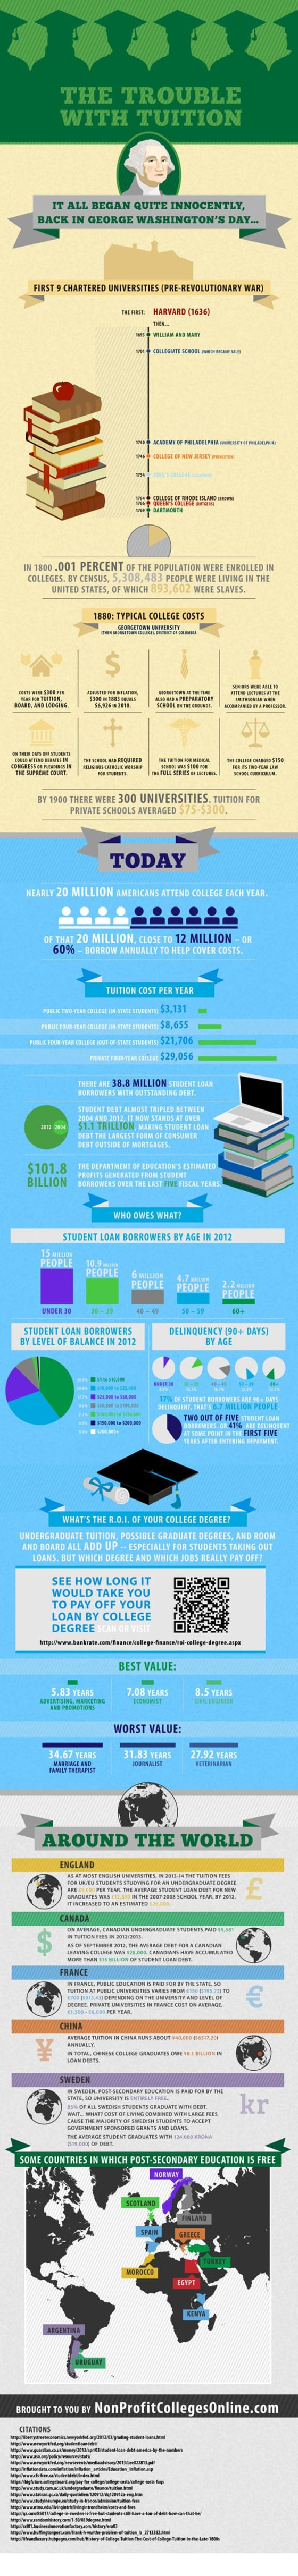 rising-cost-of-tuition